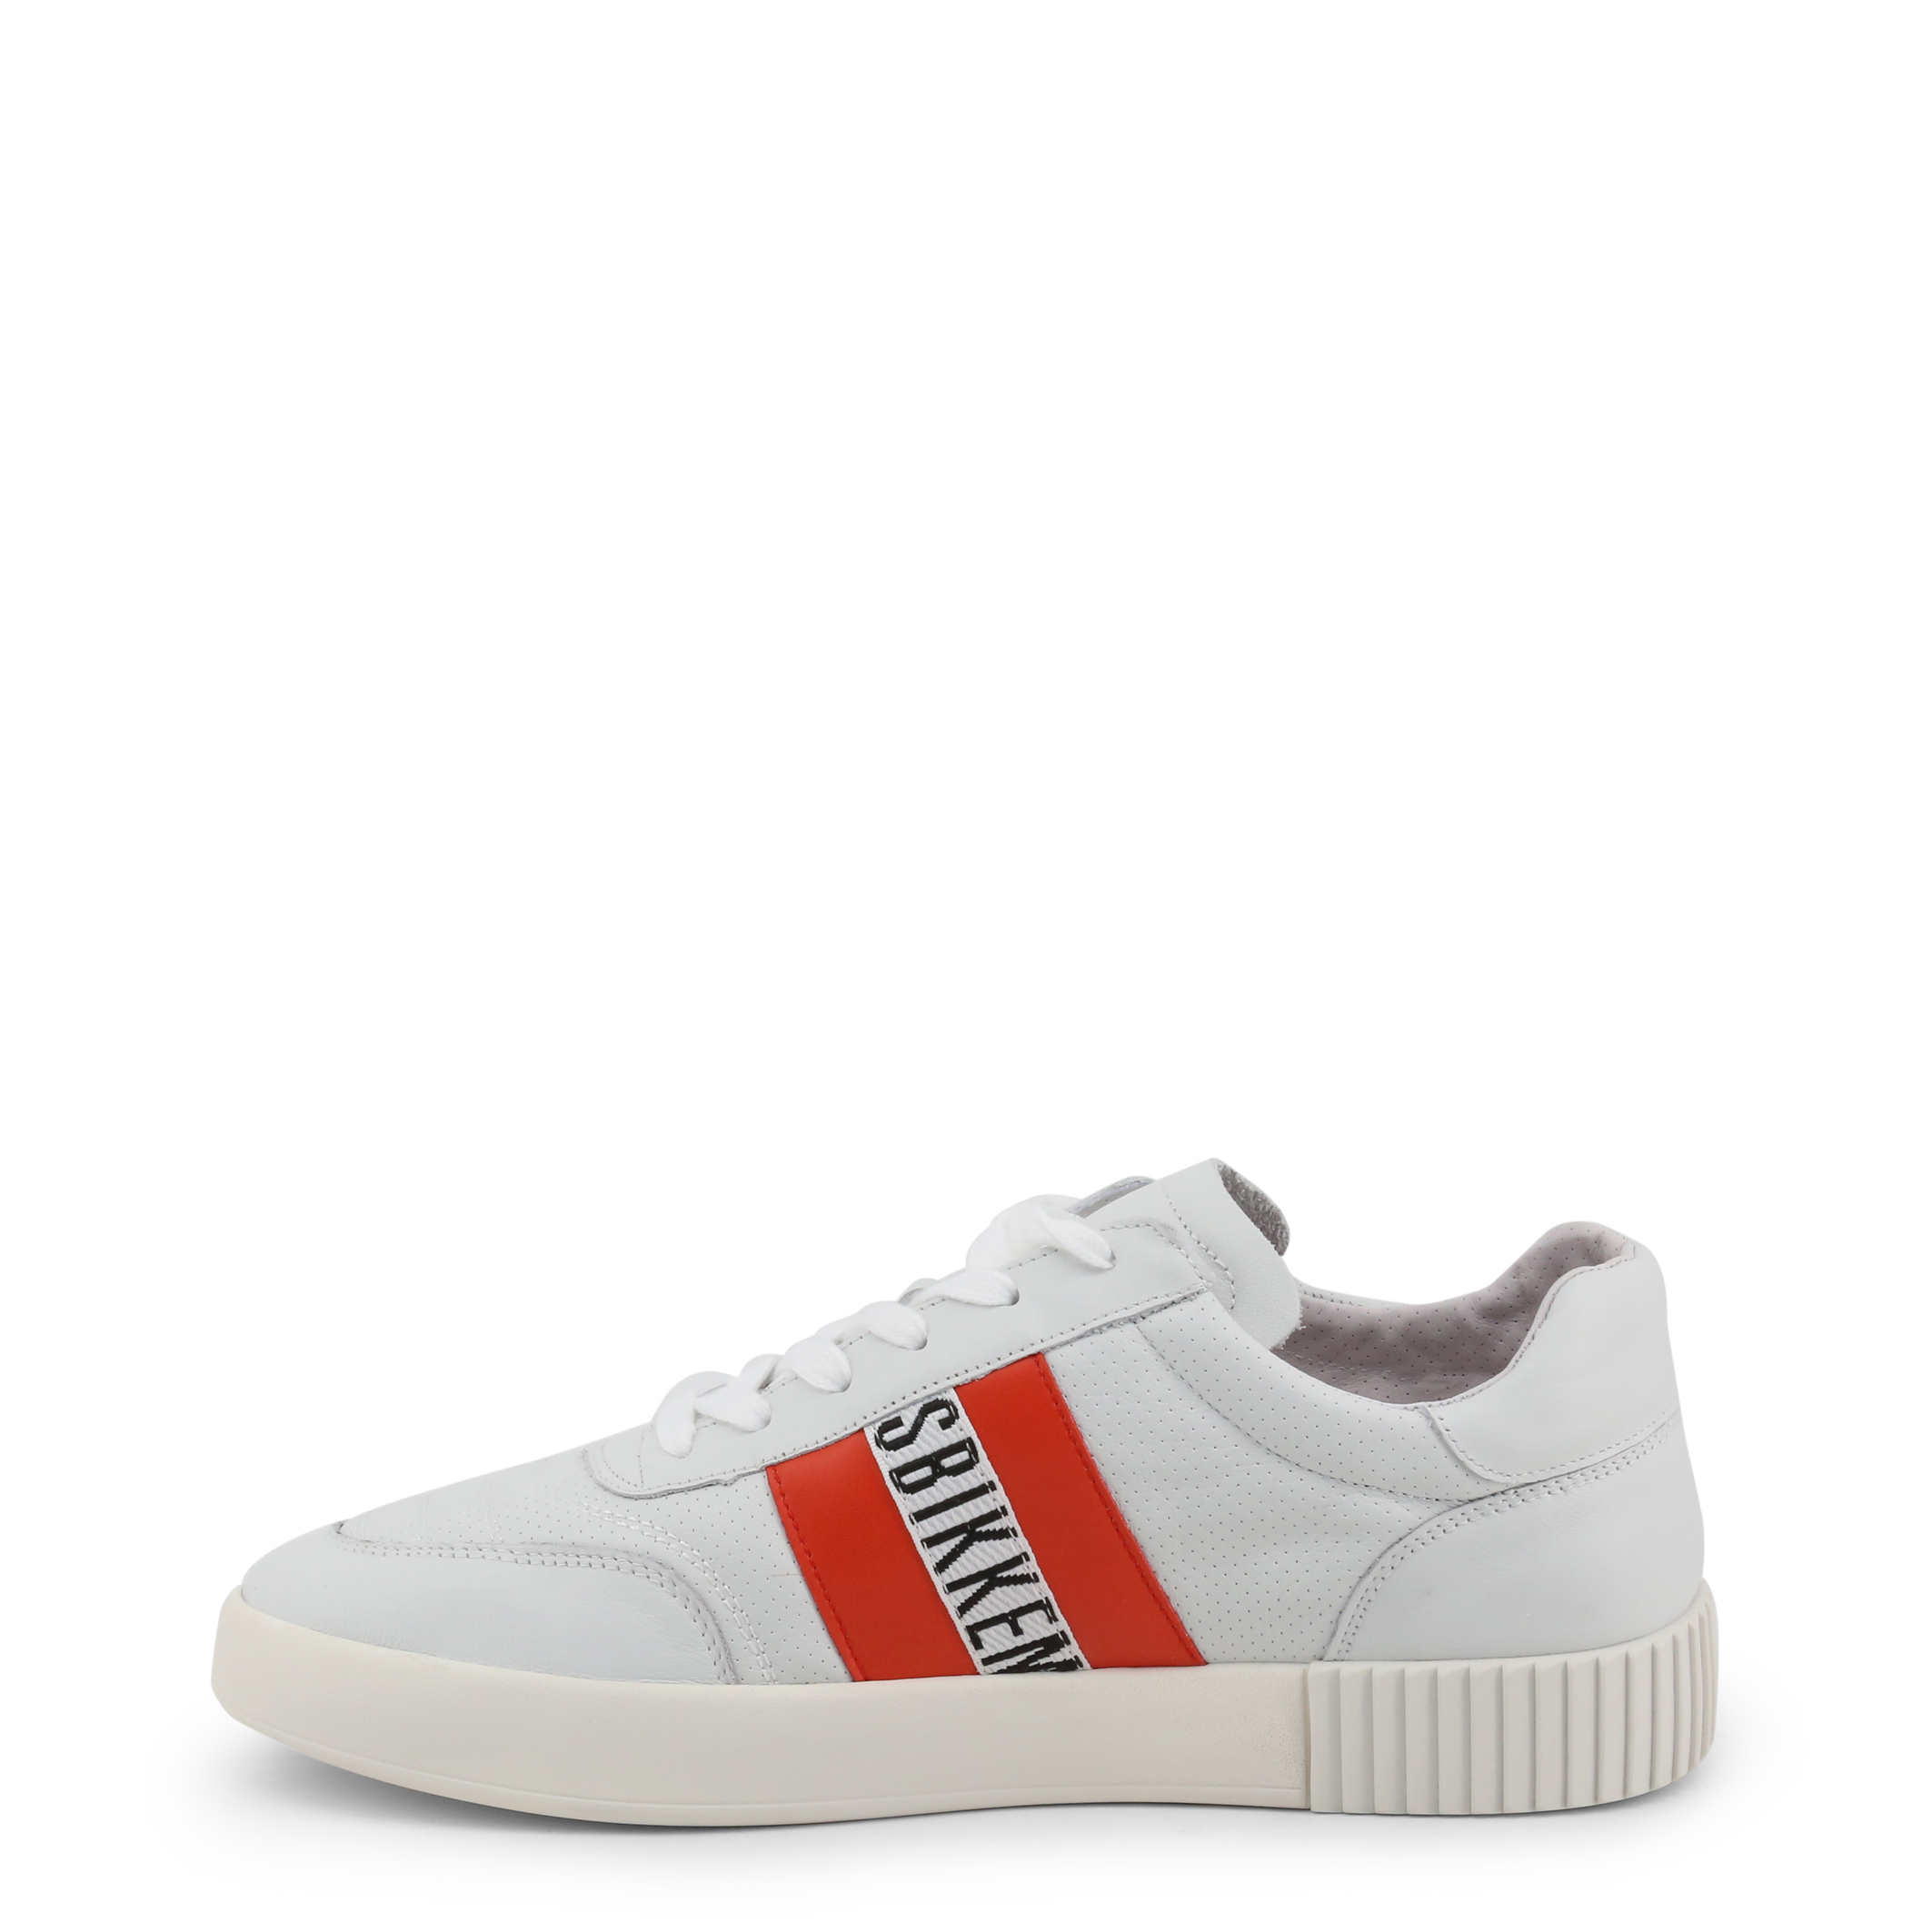 Chaussures de ville  Bikkembergs COSMOS_2382 white